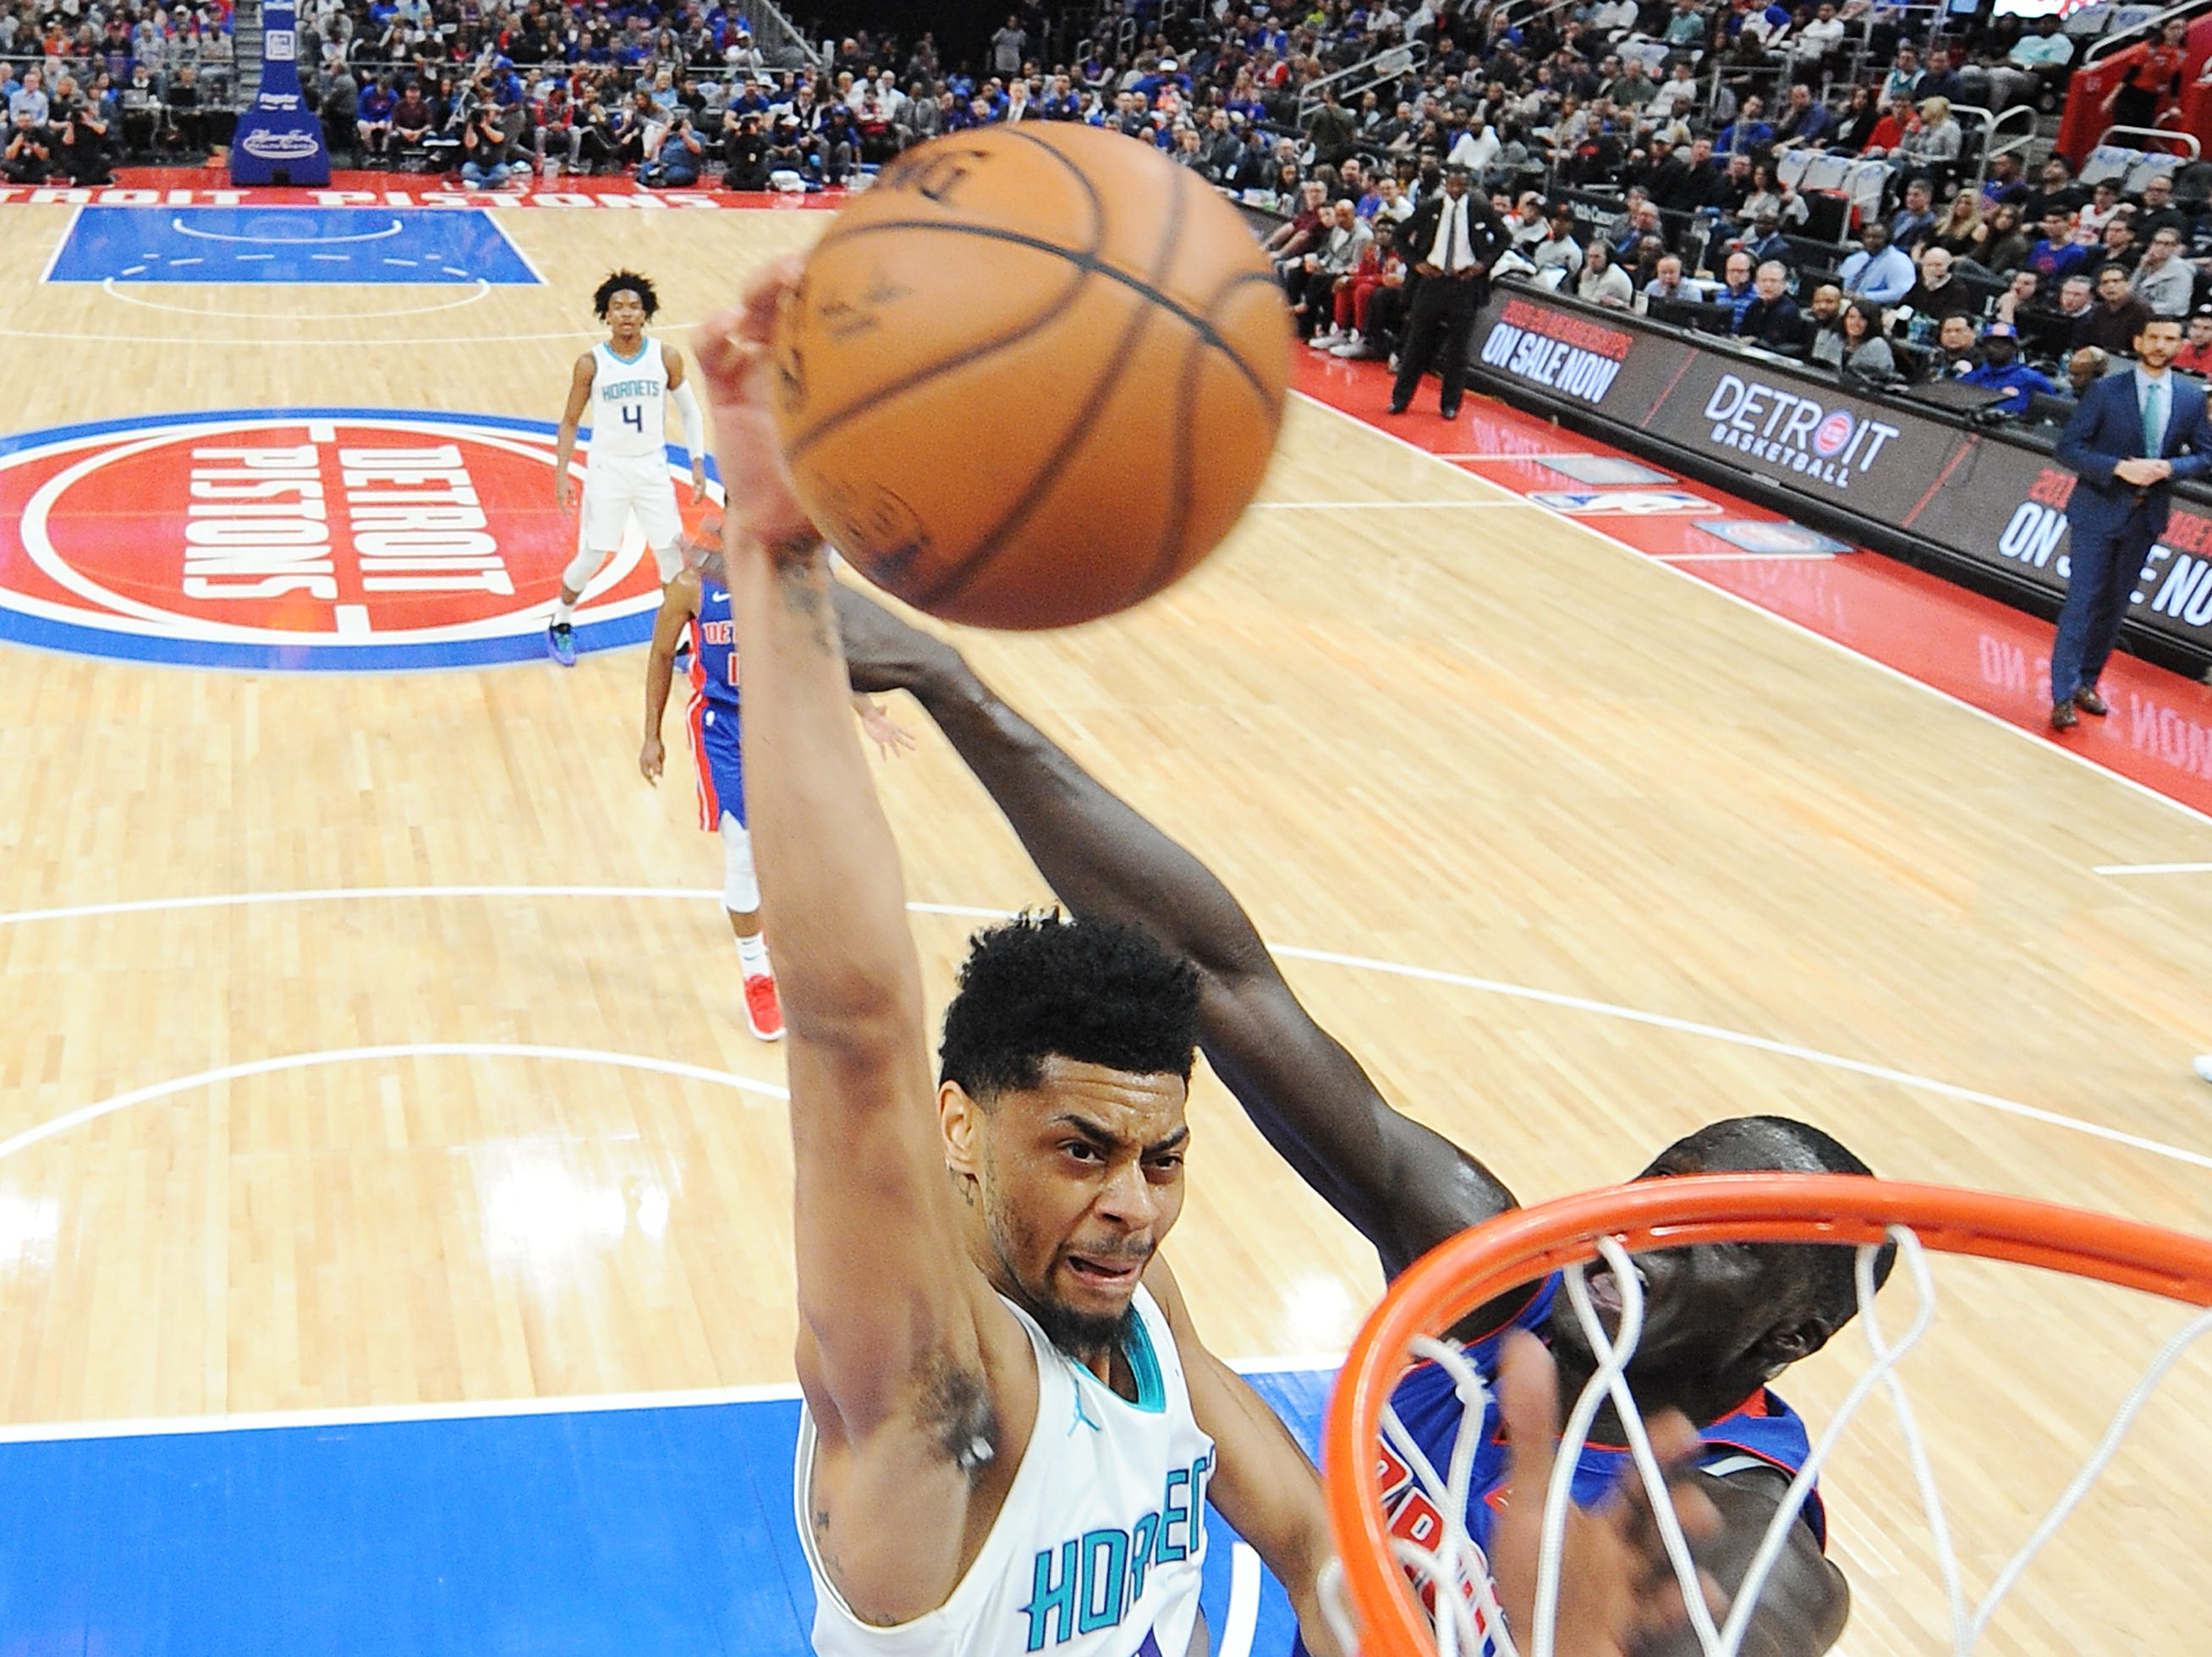 Hornets' Jeremy Lamb is fouled by Pistons' Thon Maker on his dunk attempt in the second quarter.  The Hornets defeated the Pistons 104-91, Sunday, April 7, 2019 at Little Caesars Arena in Detroit, Michigan.